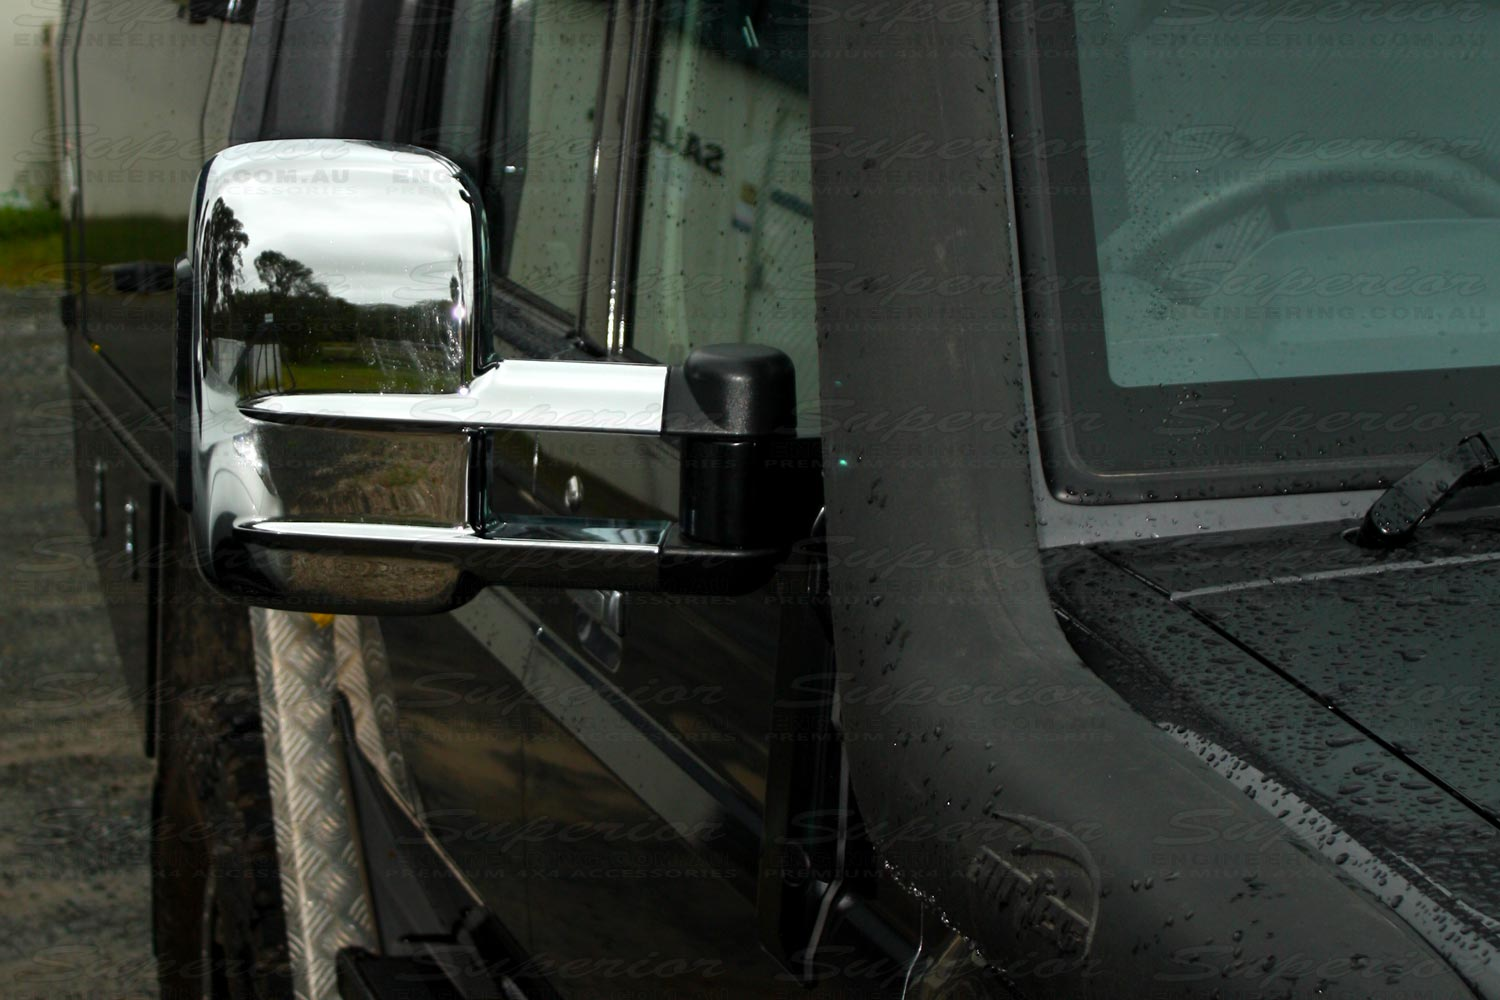 Clearview Towing Mirrors 79 Series Toyota Landcruiser